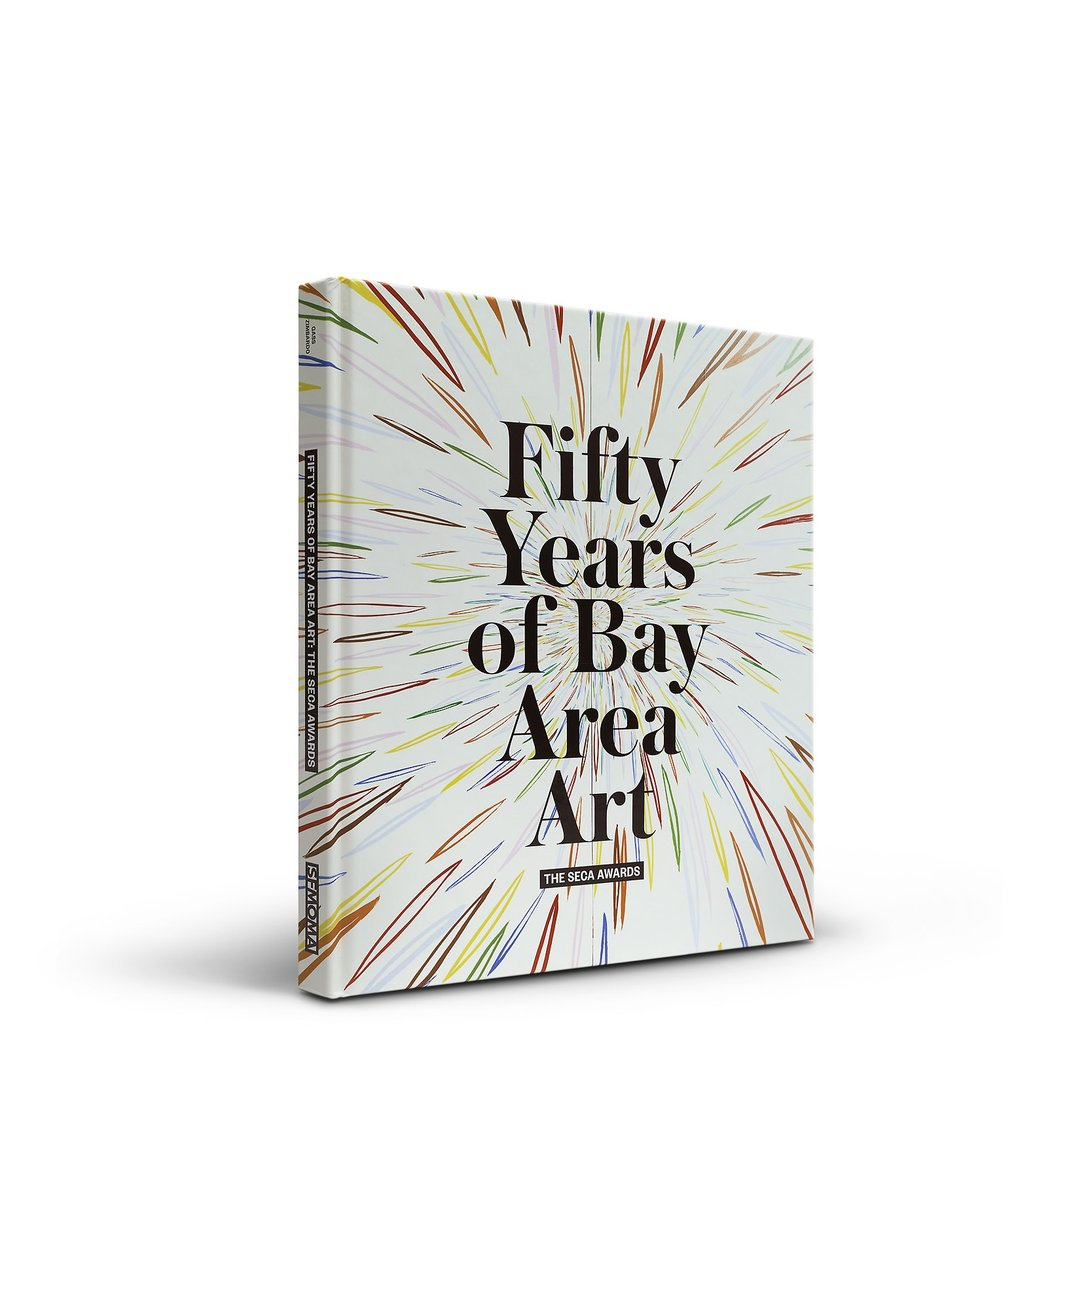 Fifty Years of Bay Area Art publication cover